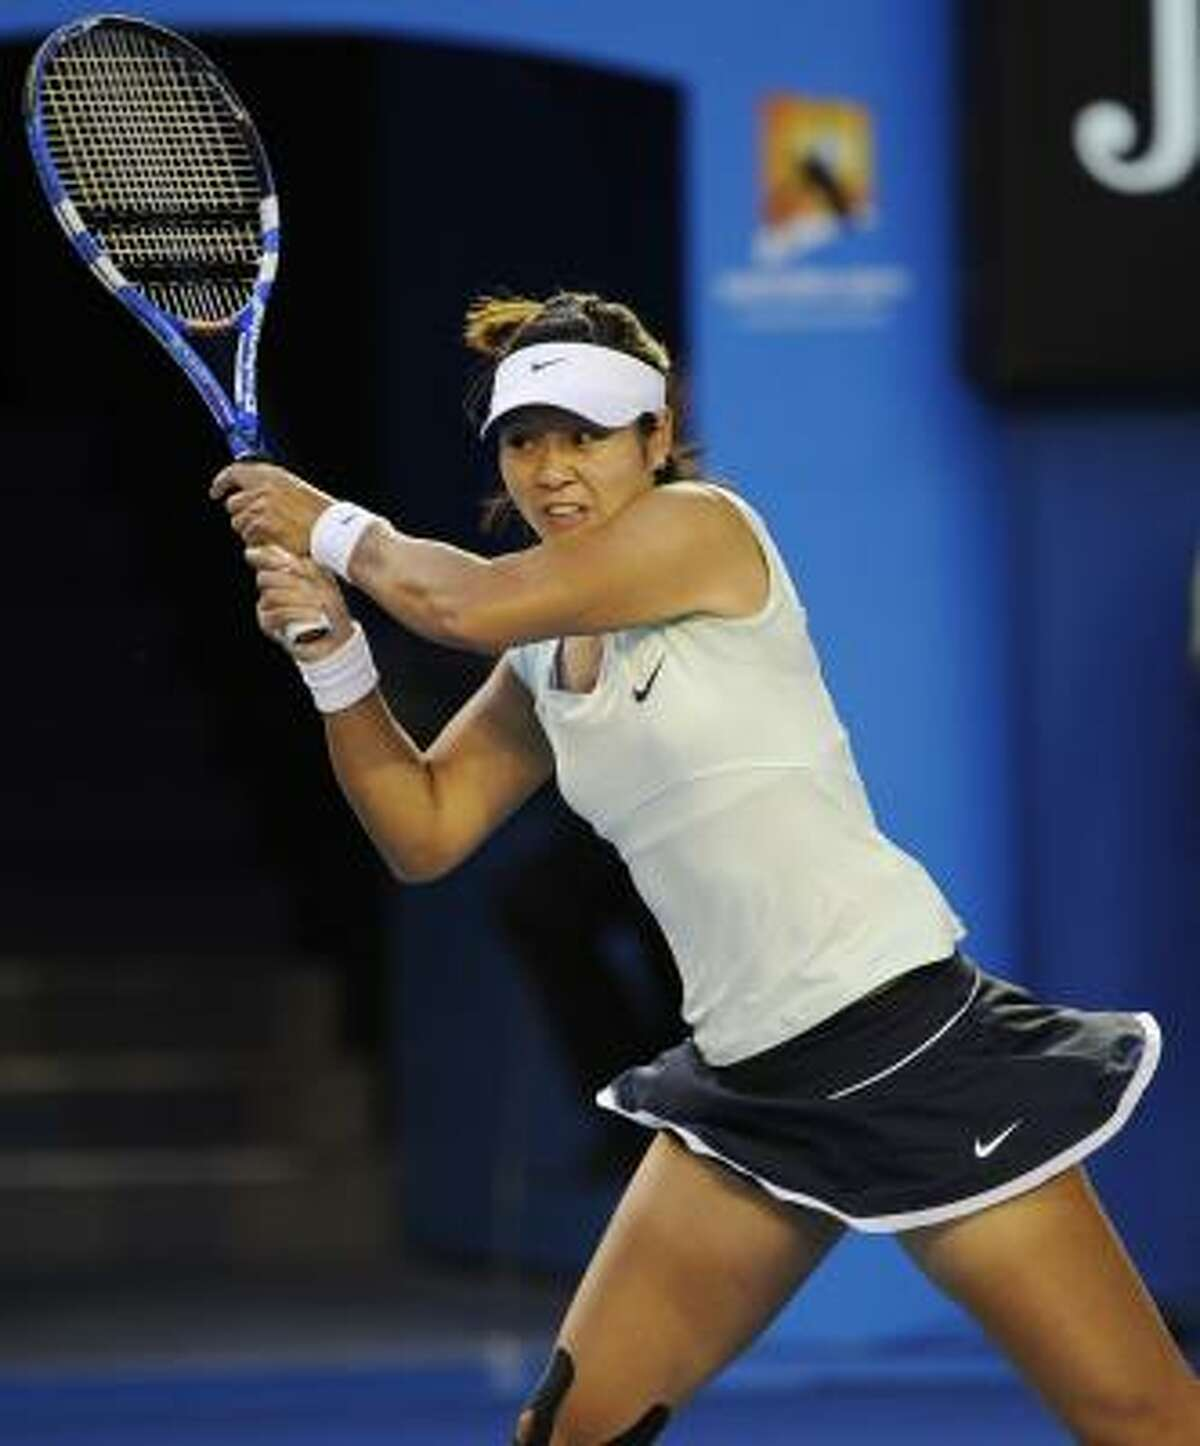 Li Na makes a backhand return to Kim Clijsters during Saturday's championship match. Li was the first Chinese player to reach a Grand Slam singles final.